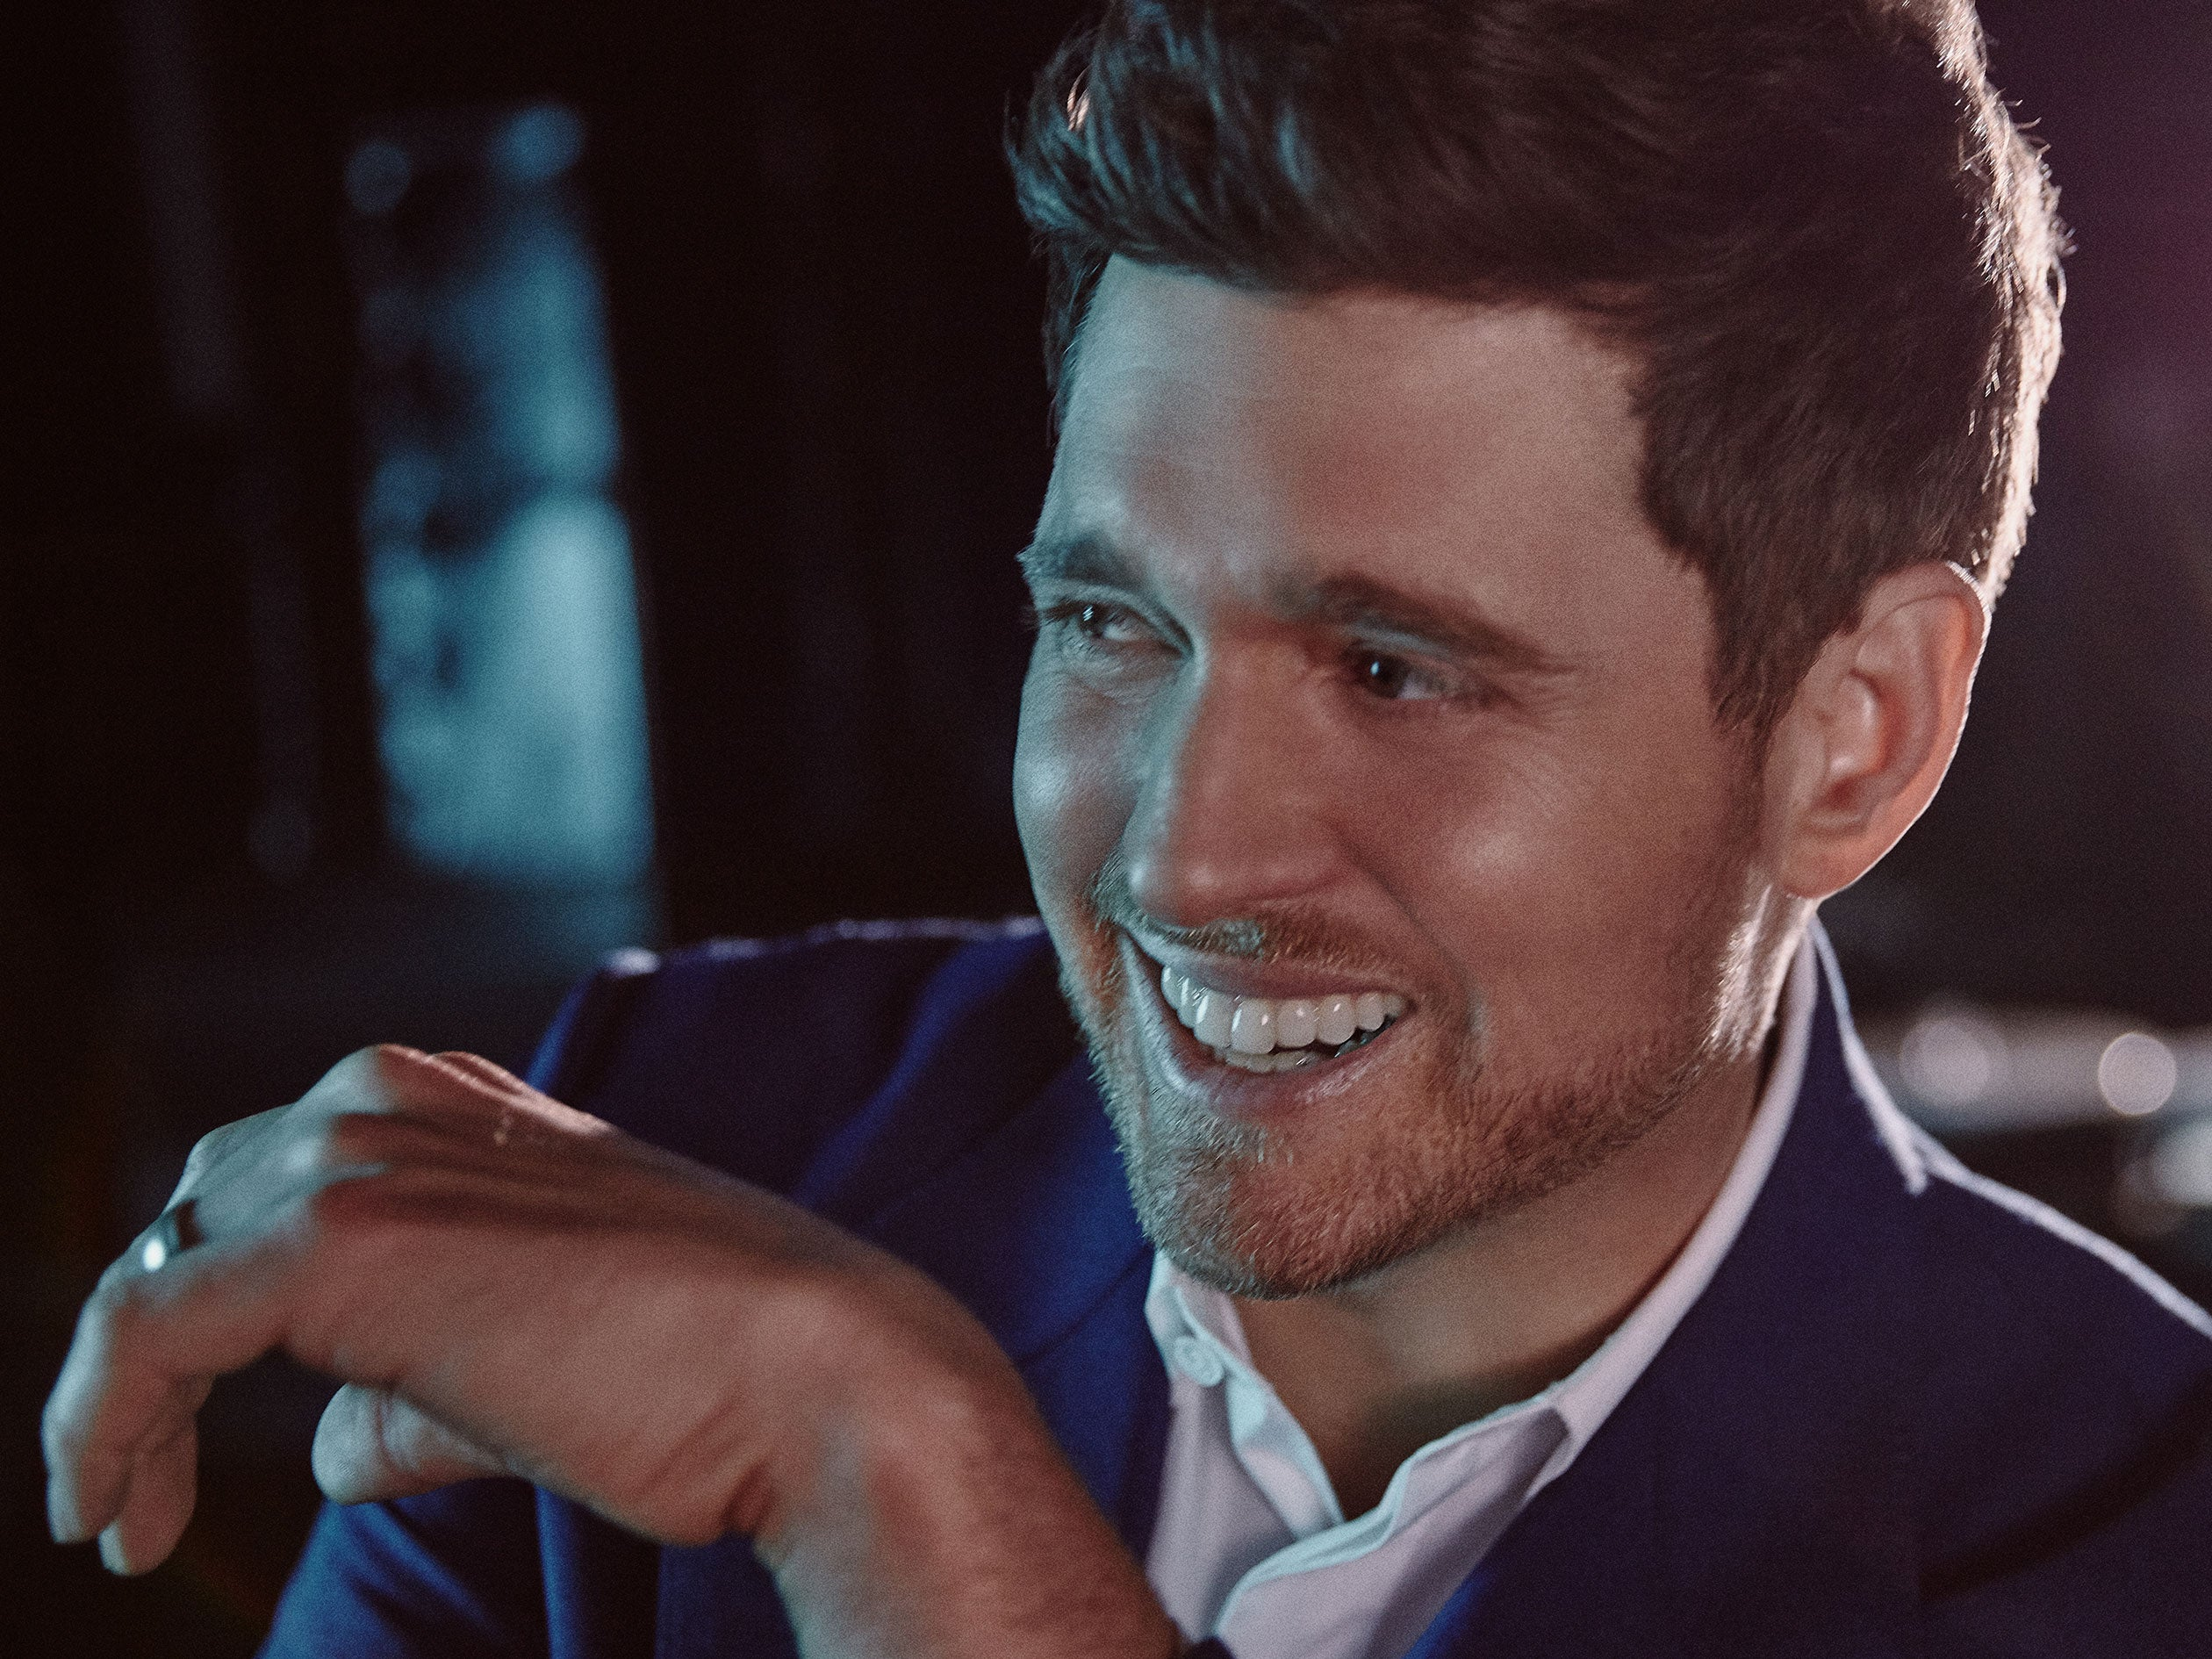 MichaelBuble_NewWebsite_840X630.jpg